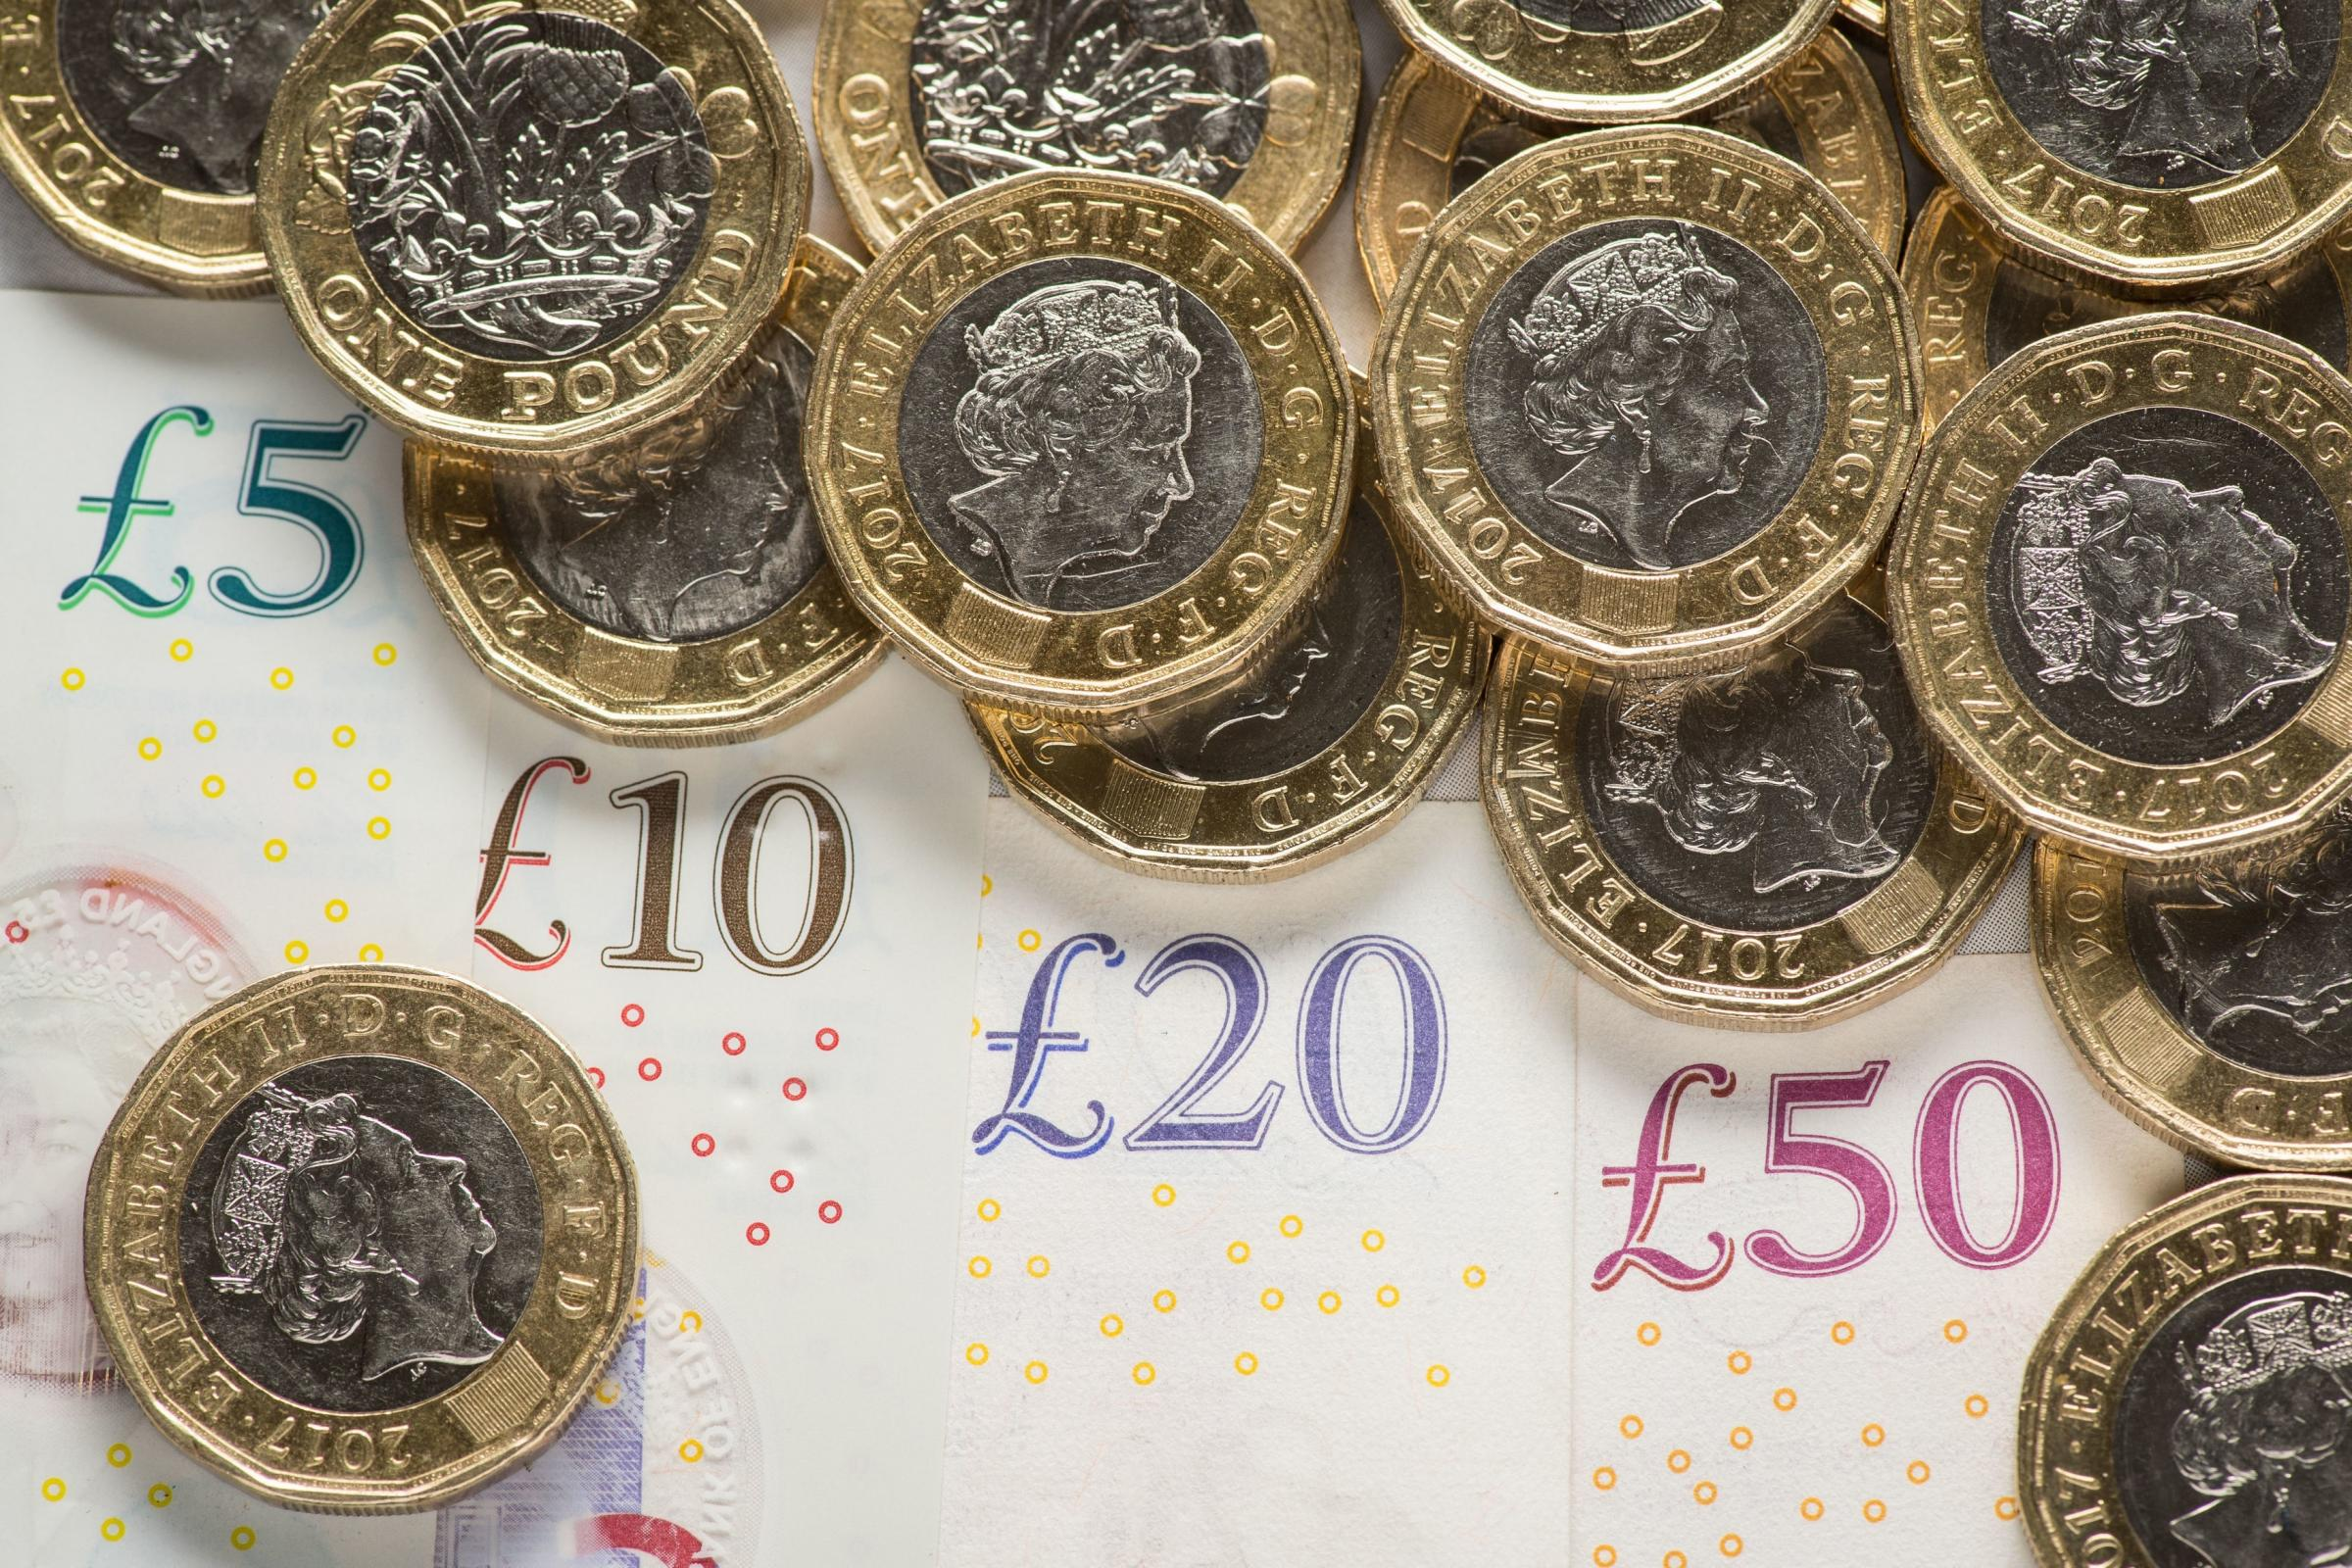 A debate into the financial challenges facing different generations has been kicked off by the City regulator, the Financial Conduct Authority. It wants to hear feedback by August 2019 to its discussion paper exploring people's changing financial need